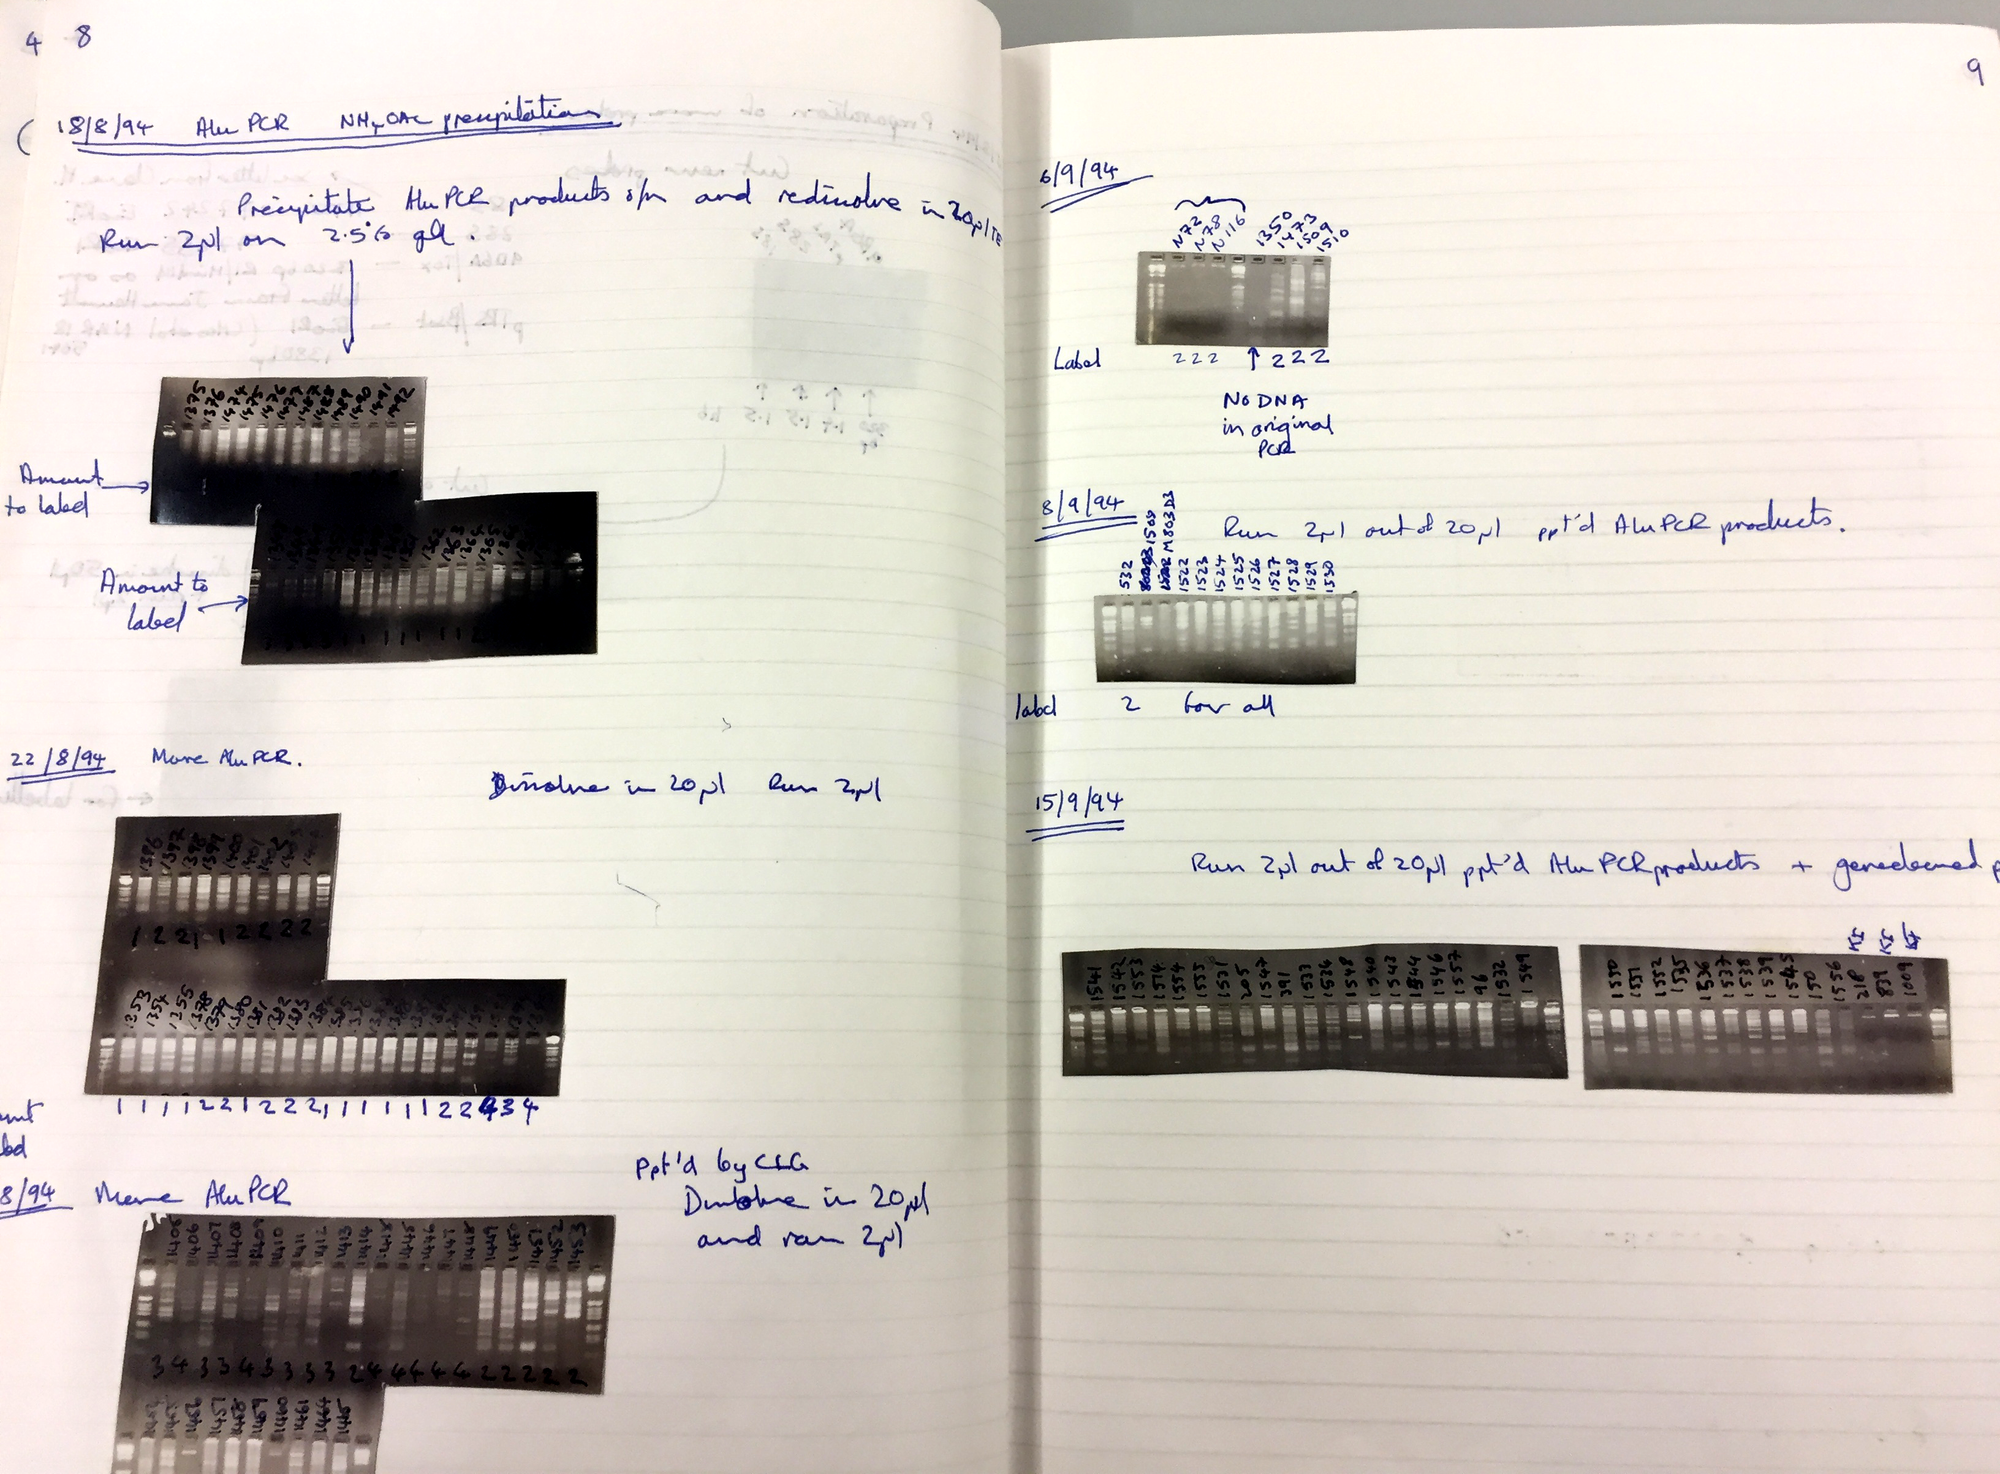 Double page in a laboratory notebook, from several days in August 1994. It has images of PCR gels and accompanying notes.